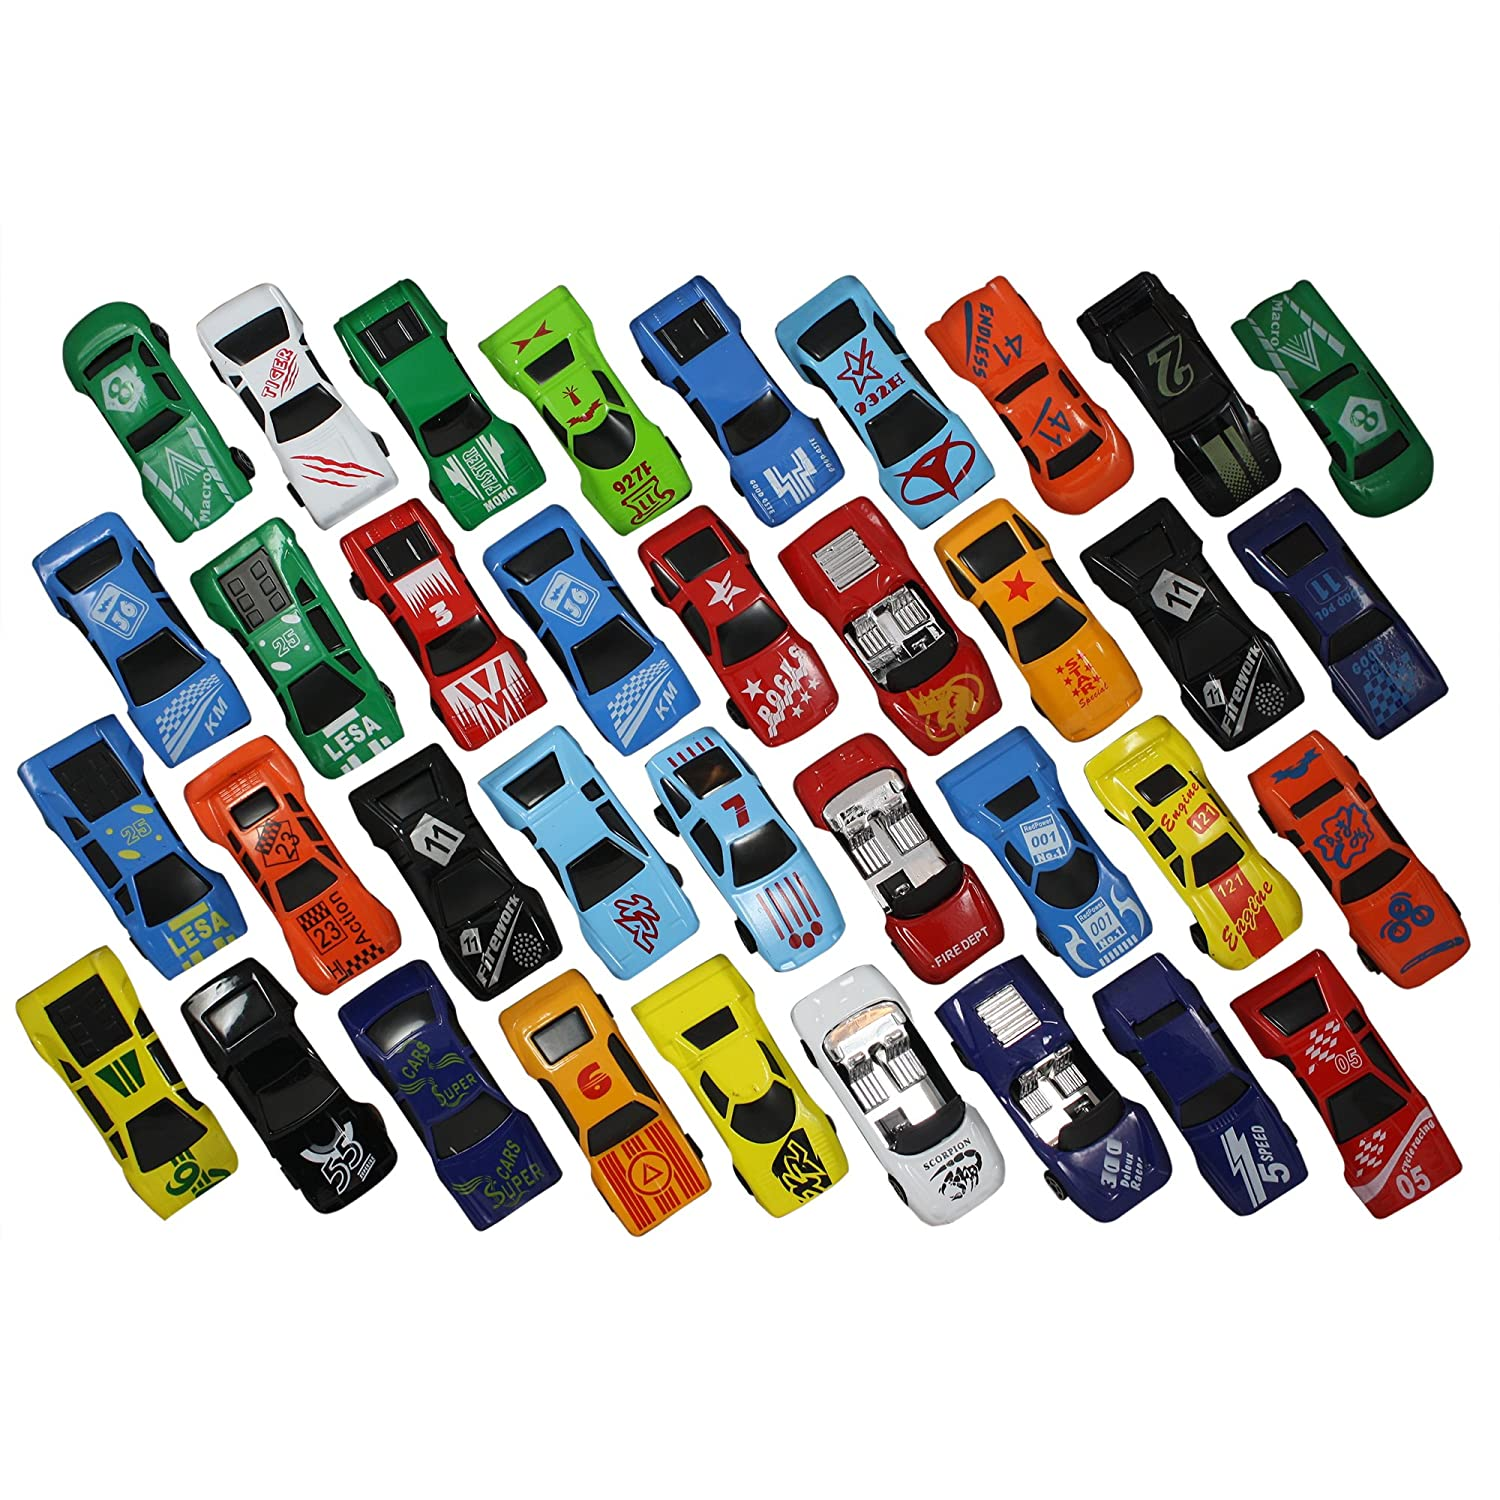 Race Car Toys Assorted for Kids, Boys or Girls - Free Wheeling Die Cast Metal Plastic Toy Cars Set of 36 Numbered Vehicles + Convertibles Great Gift, Party Favors or Cake Toppers Smarterbuy Toys